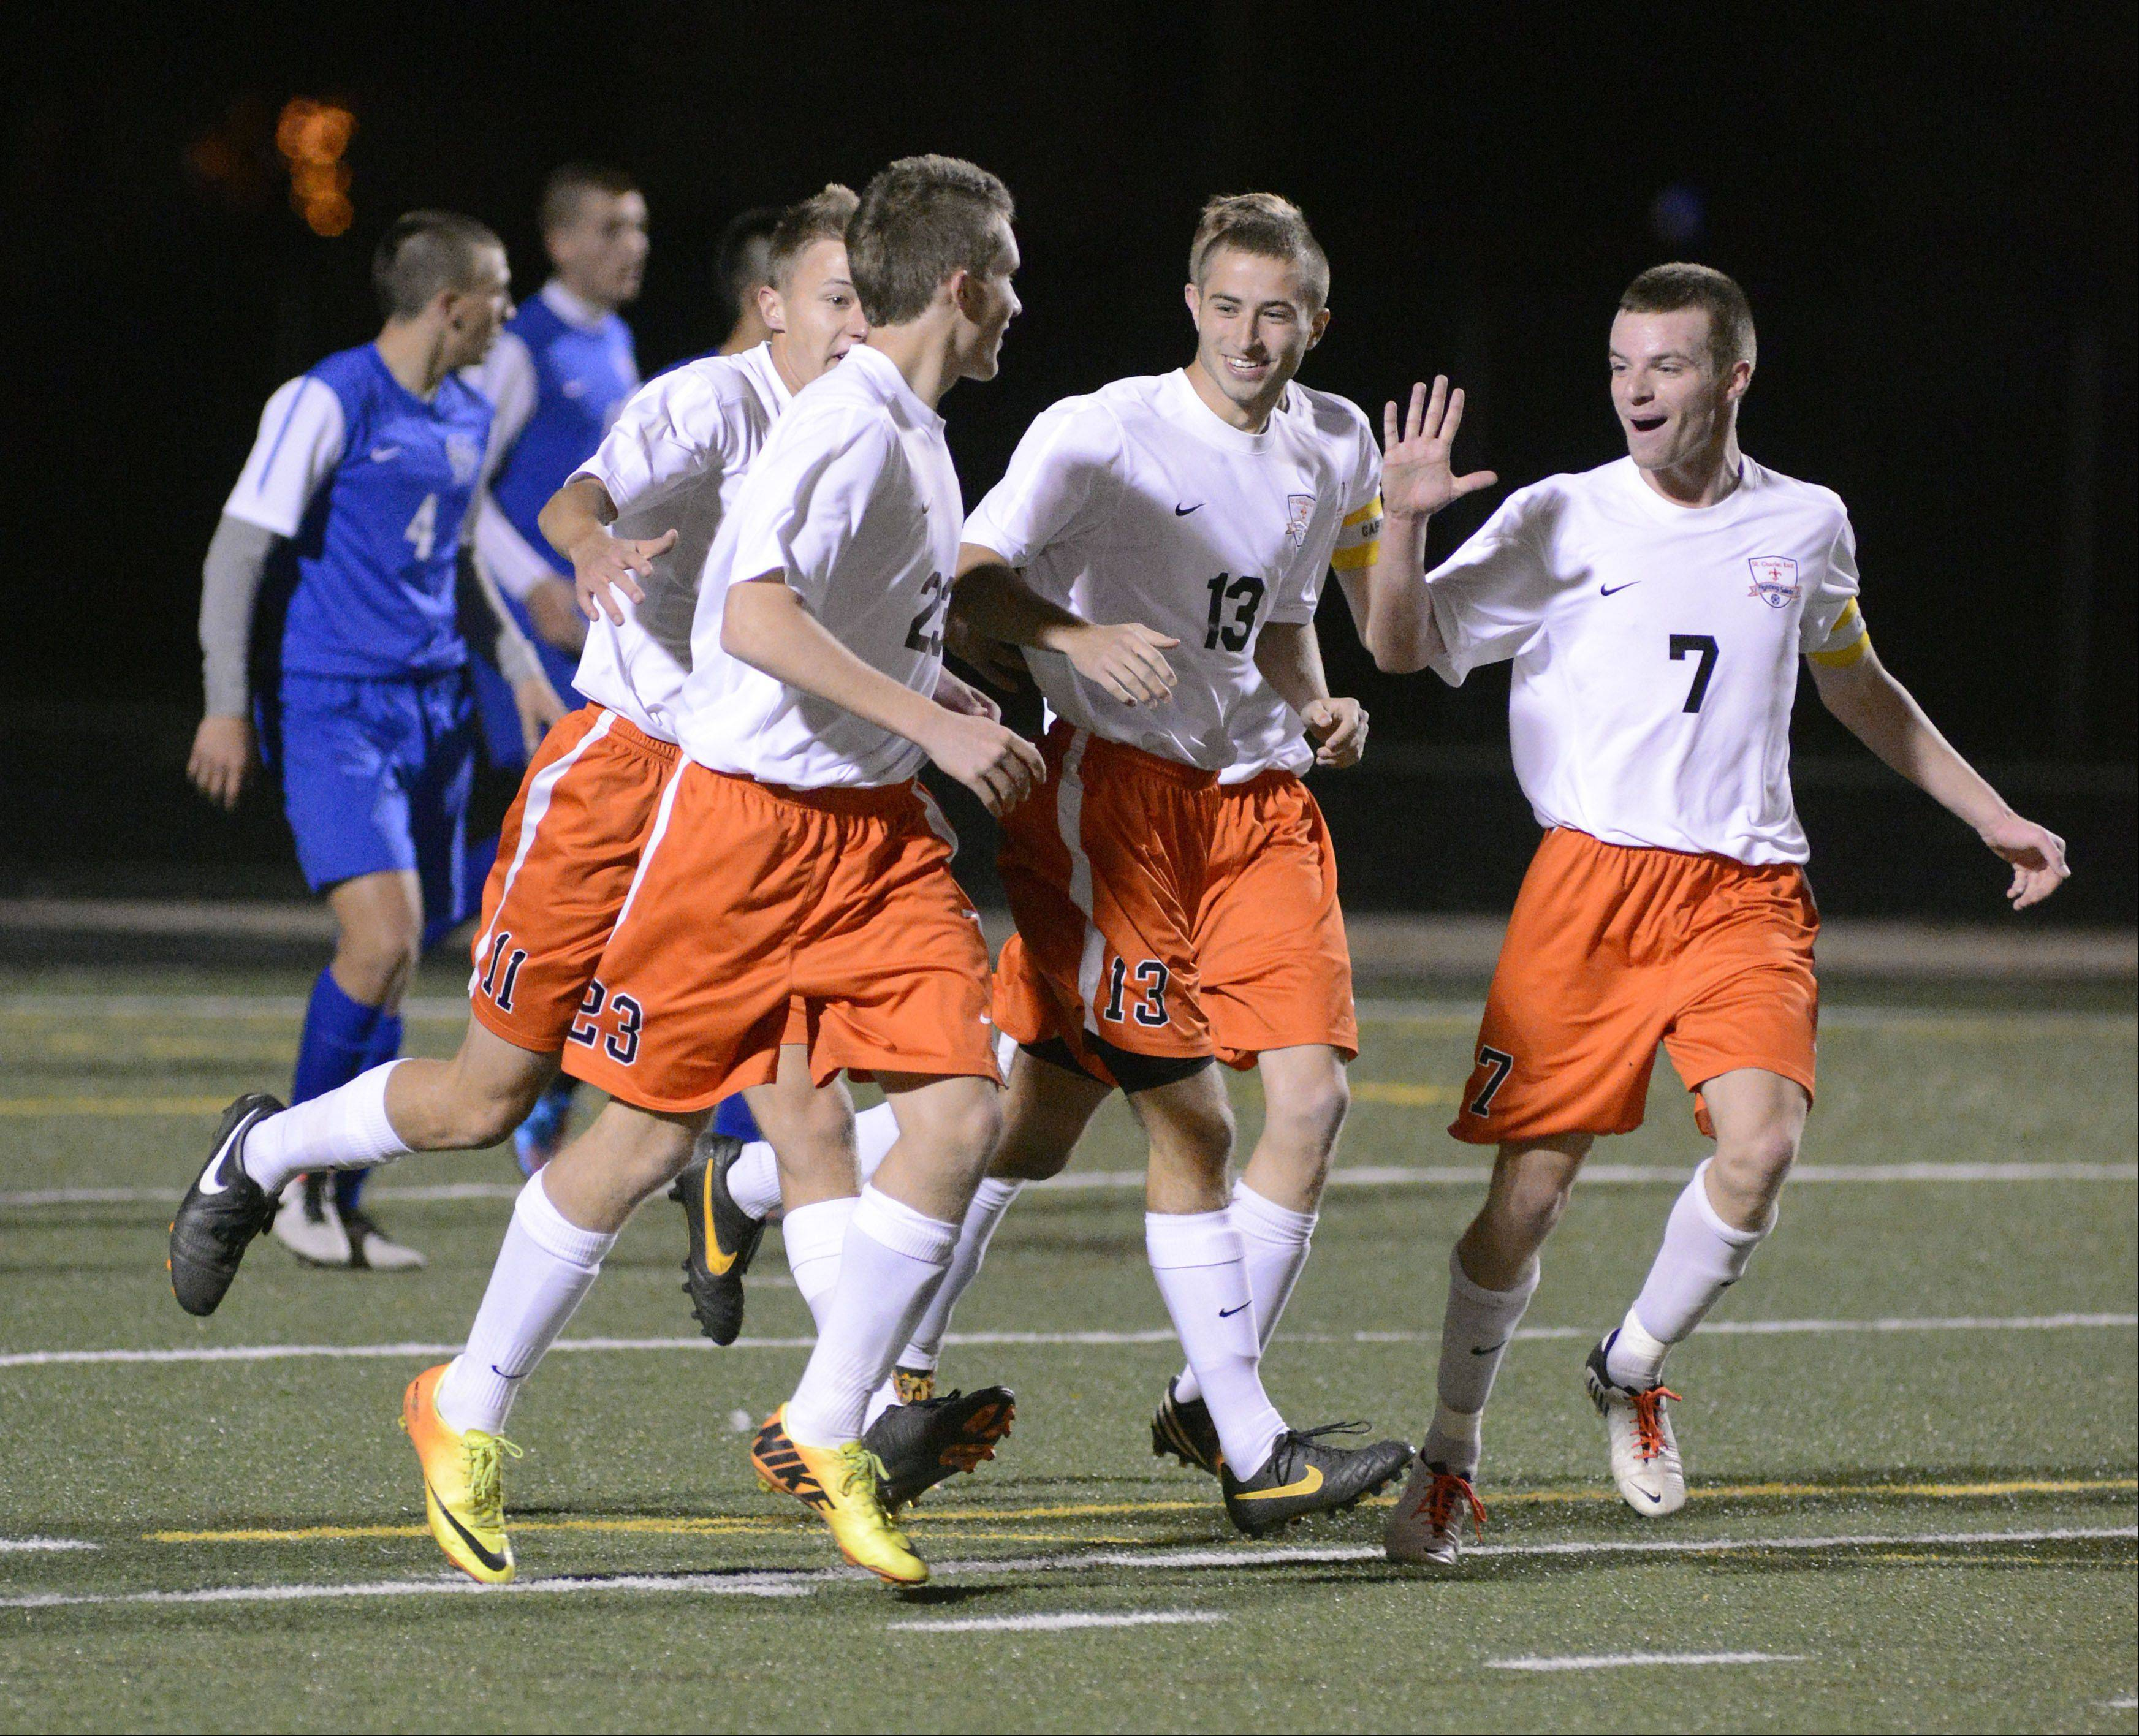 St. Charles East's Tyler Robbins (23) is congratulated by teammates Jeff Chitwood (13) and Jacob Sterling (7) after scoring a goal over Wheaton North in the Schaumburg sectional semifinals on Tuesday, October 29.